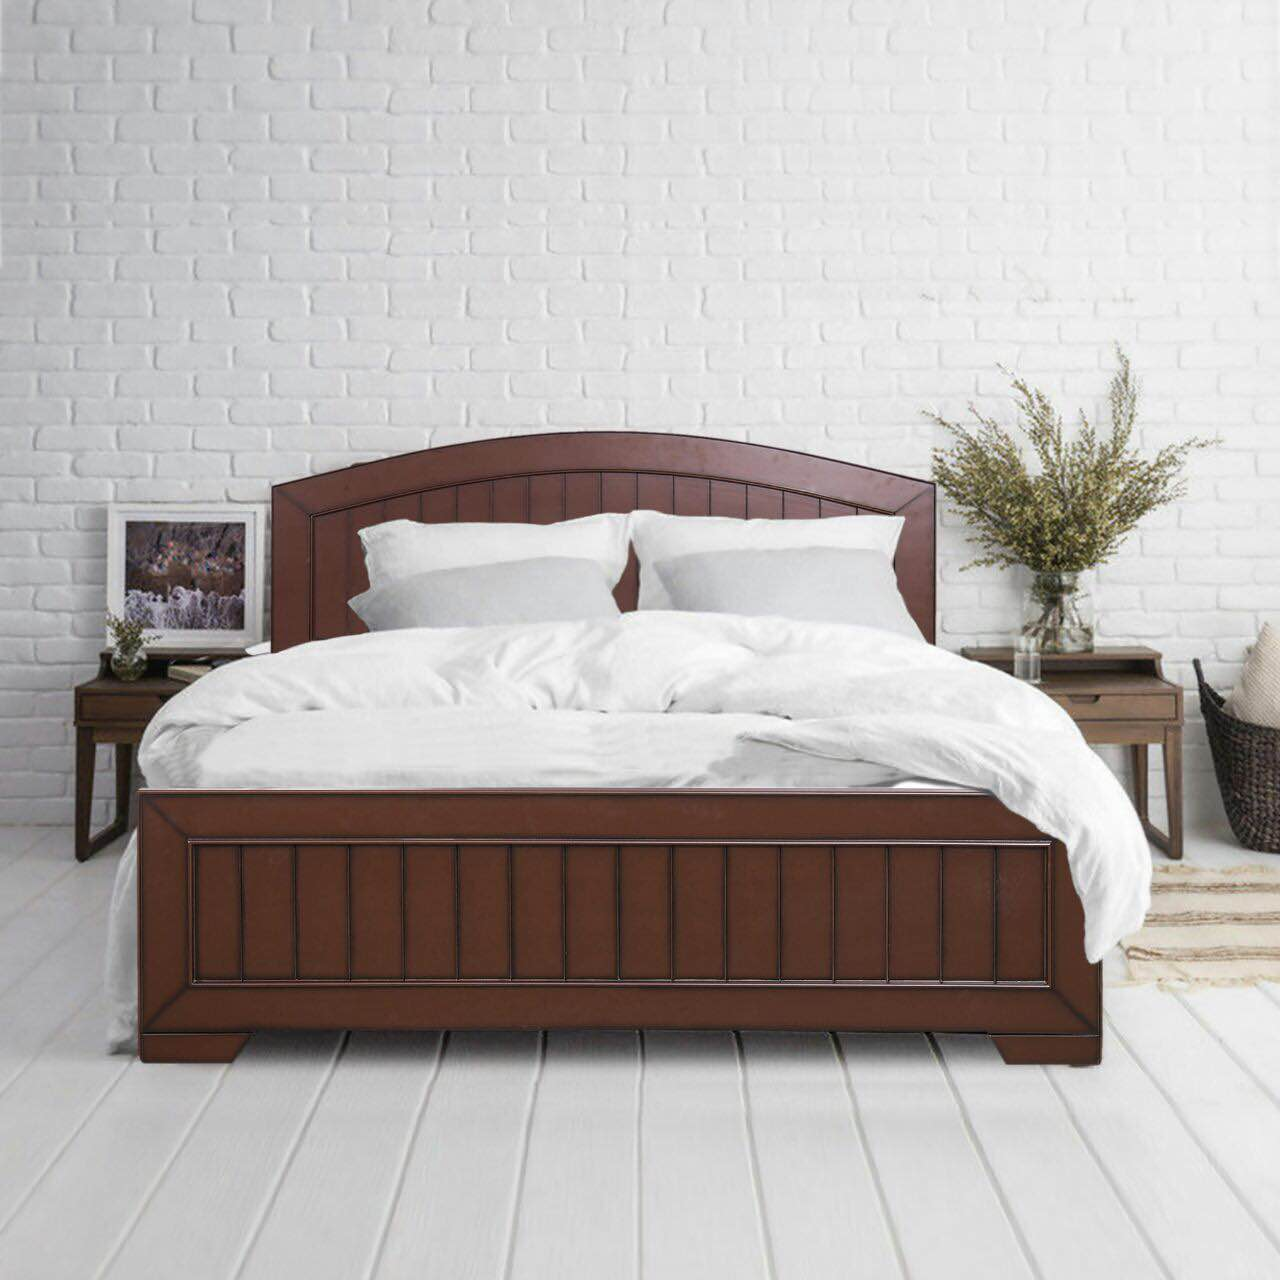 Latest model cot in Coimbatore   Latest models cot , king and queen size, solid wood bed, bedroom furniture .latest collections, best model Furnitures in Coimbatore